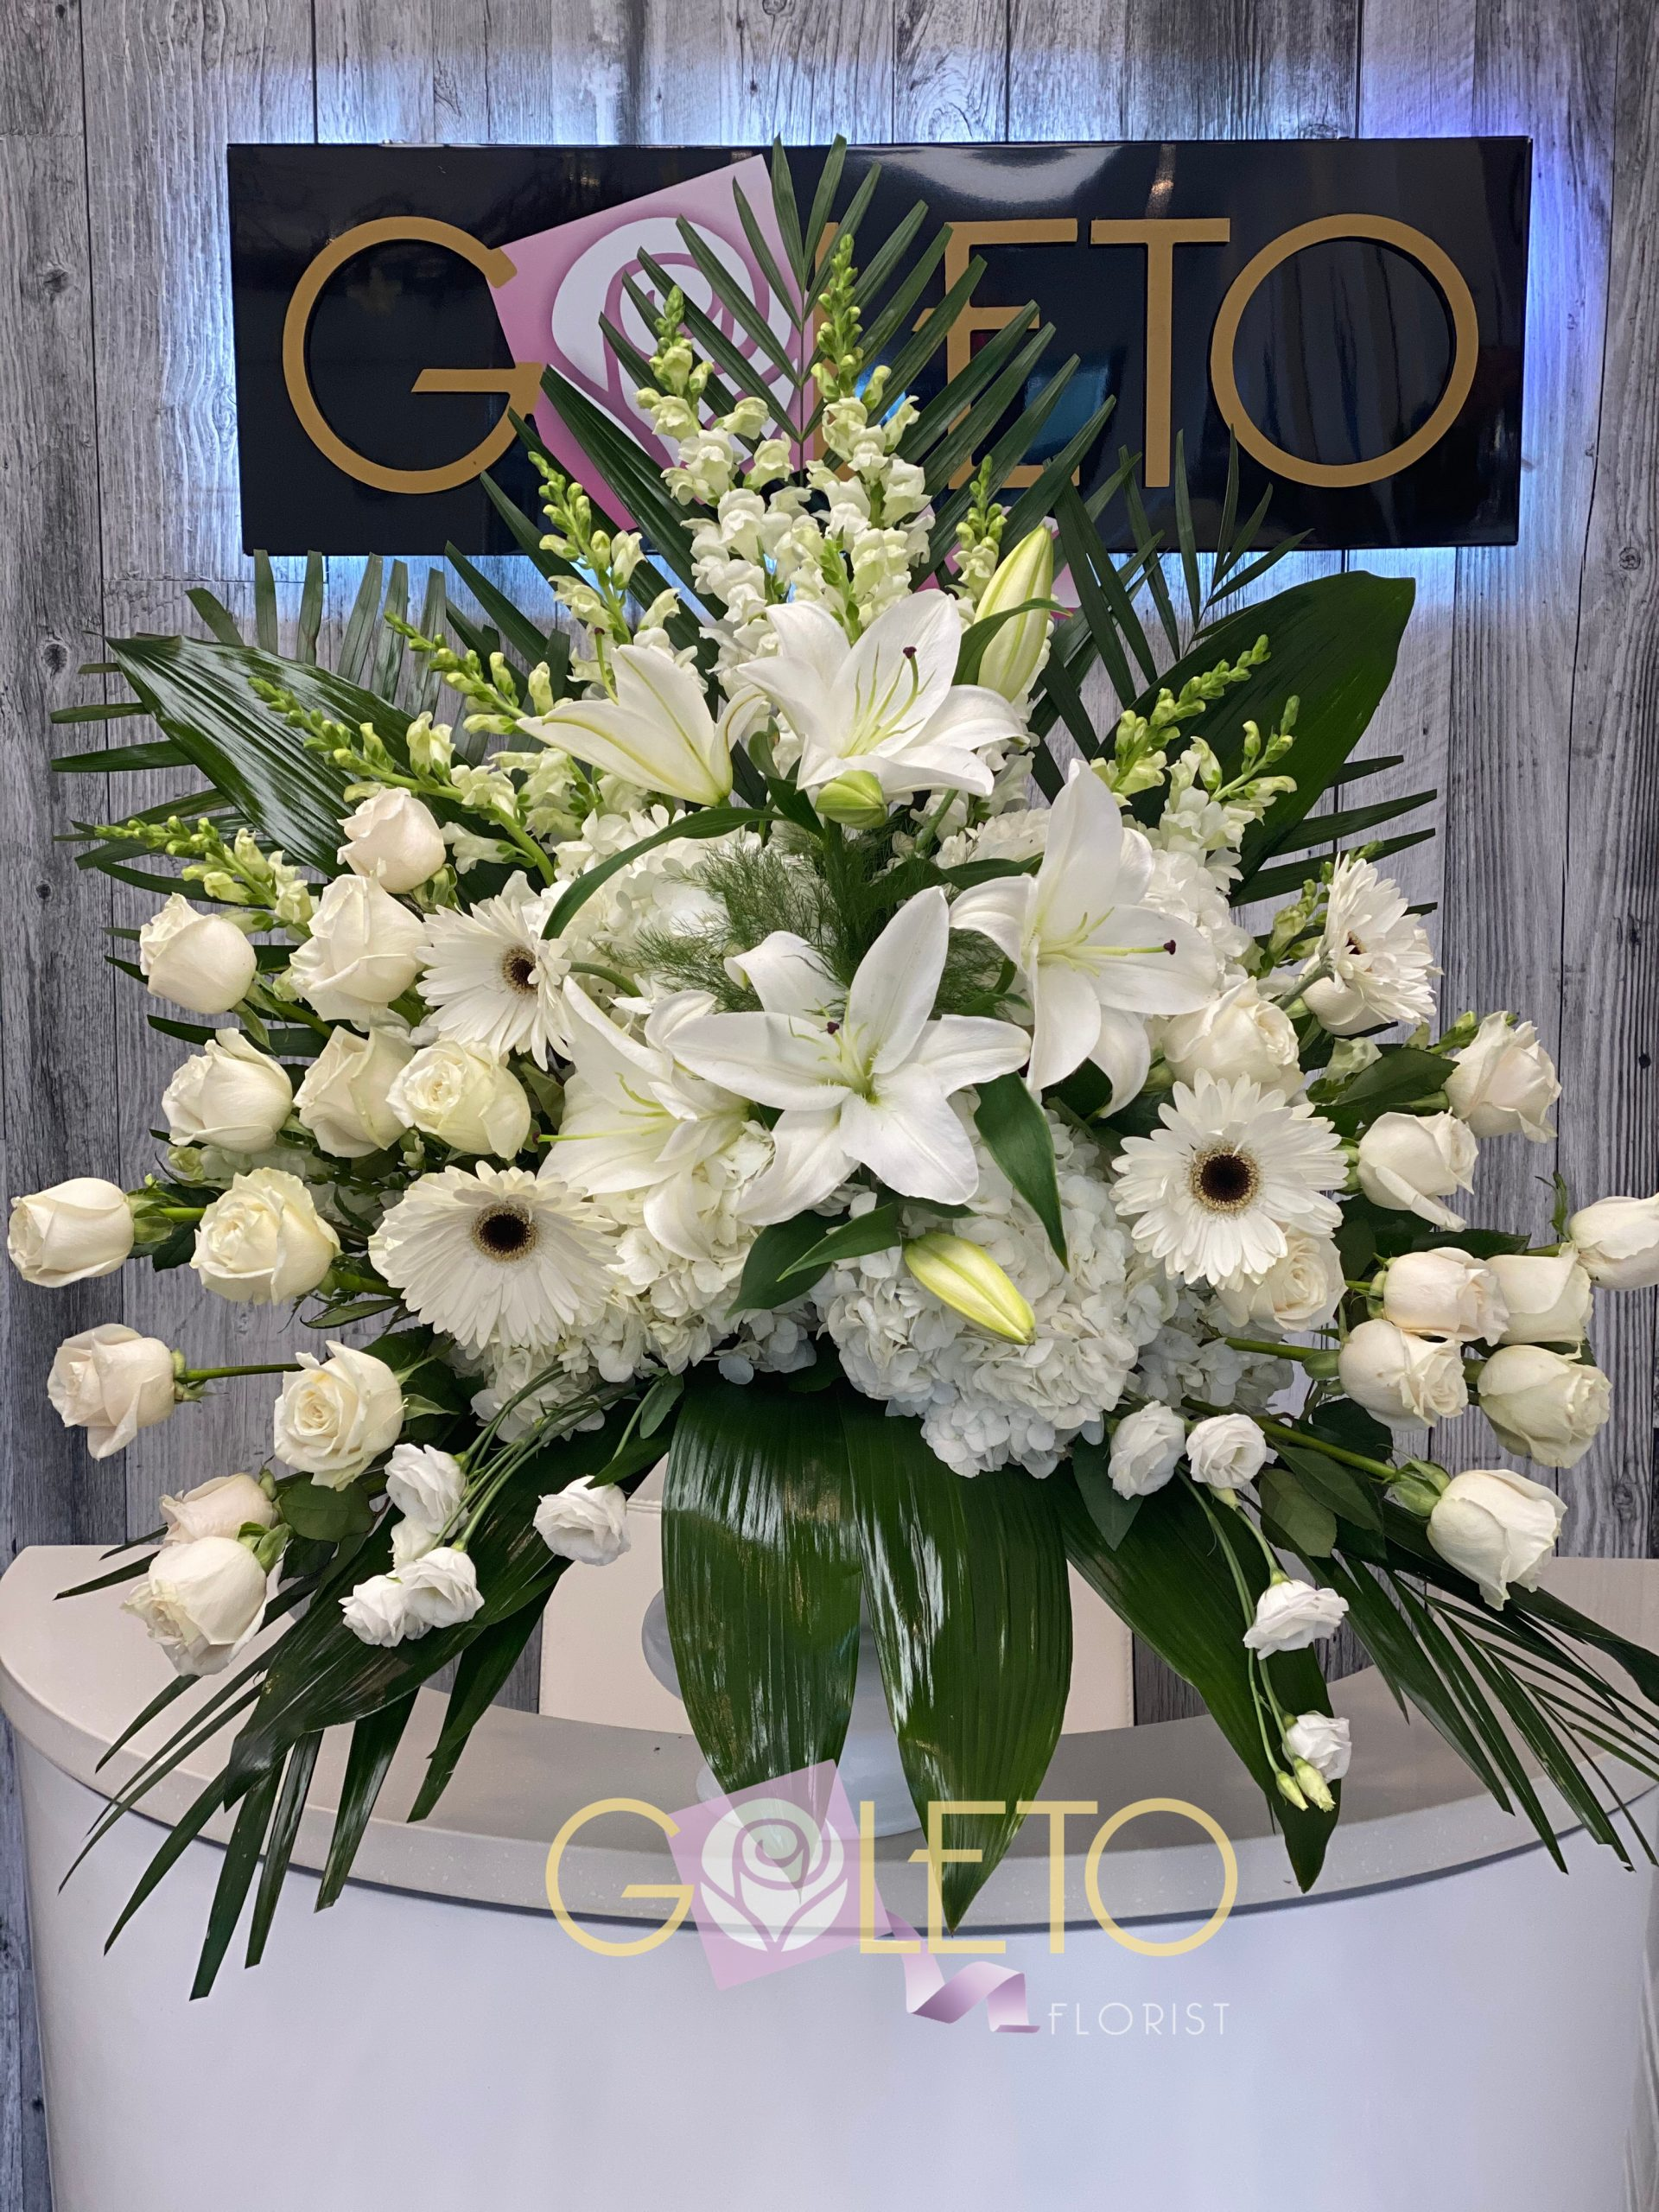 goleto-florist-richmond-hill-sympathy-arrangments2